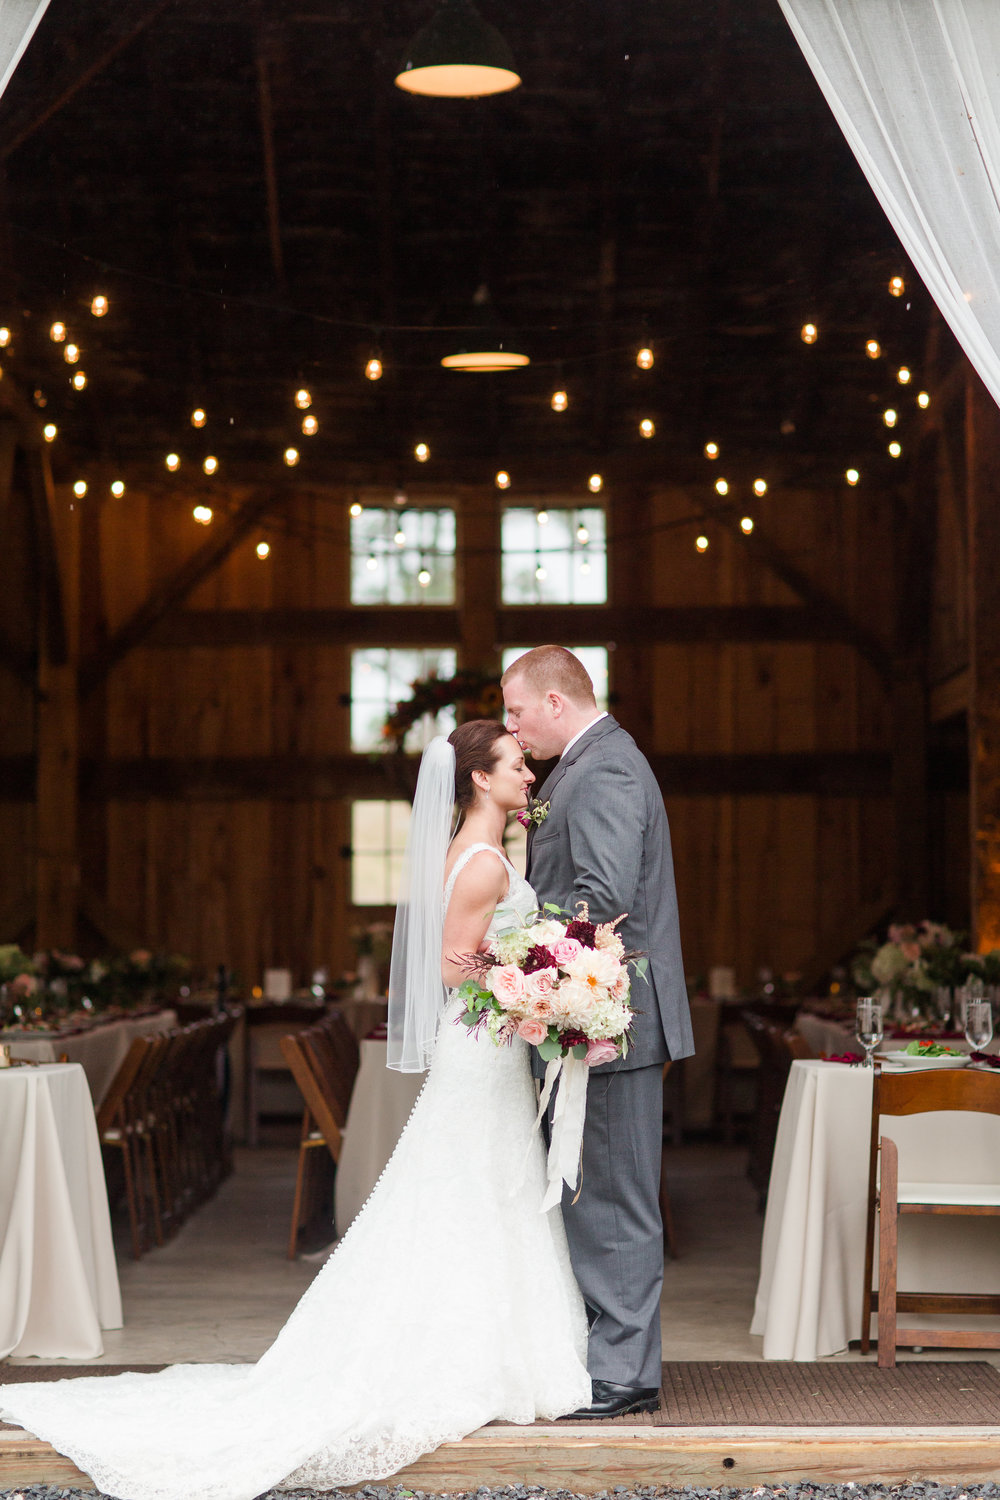 bride and groom kissing outside barn under twinkly lights